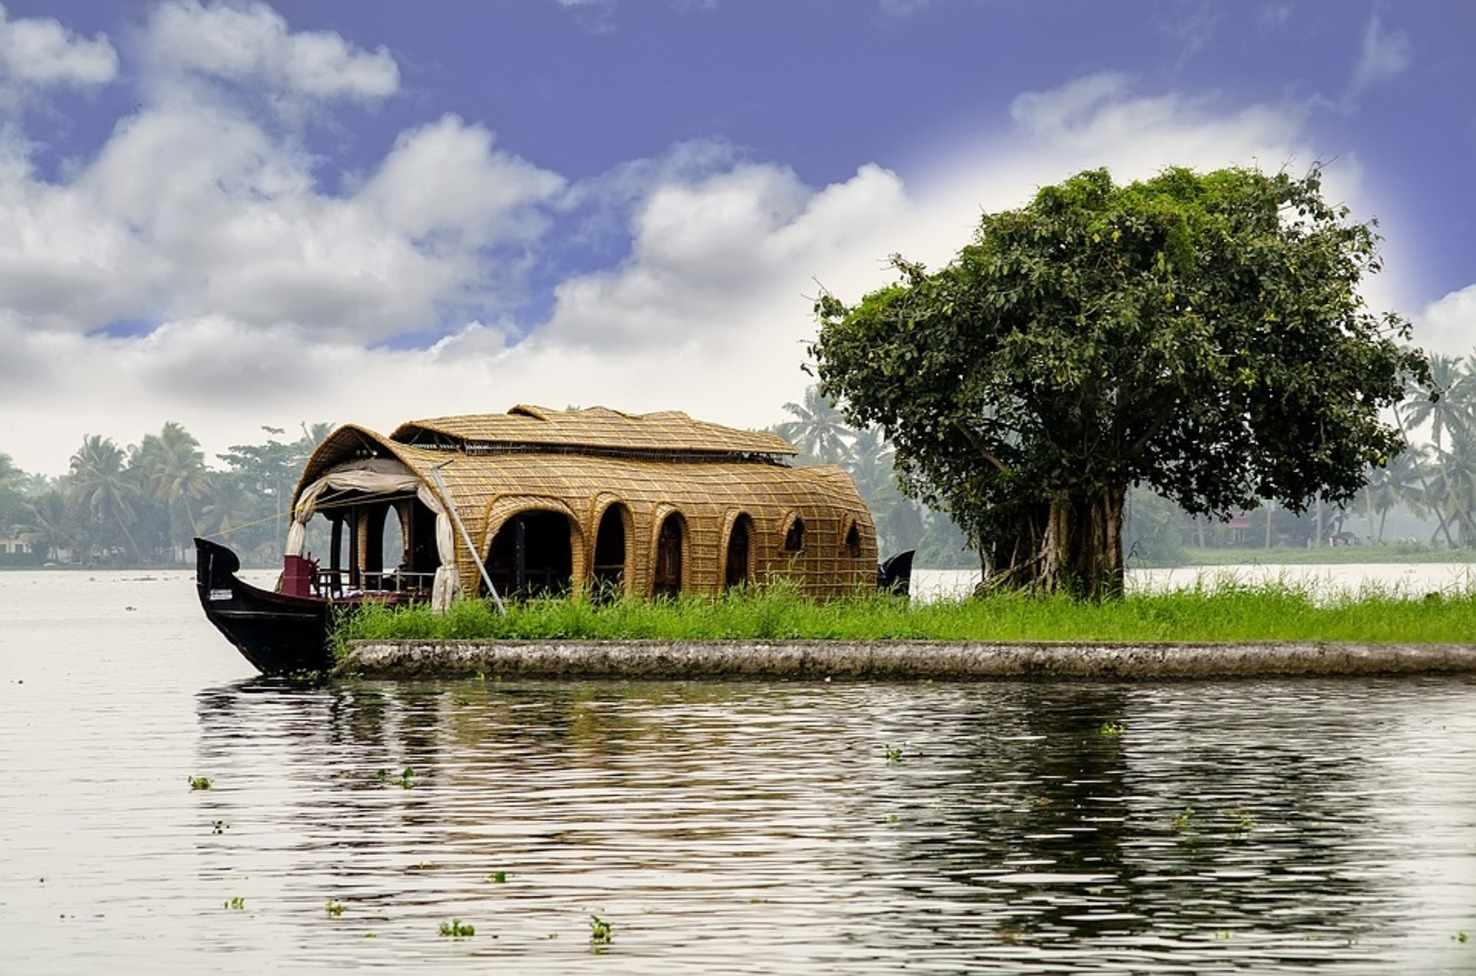 Large kerala houseboat 2242698 960 720